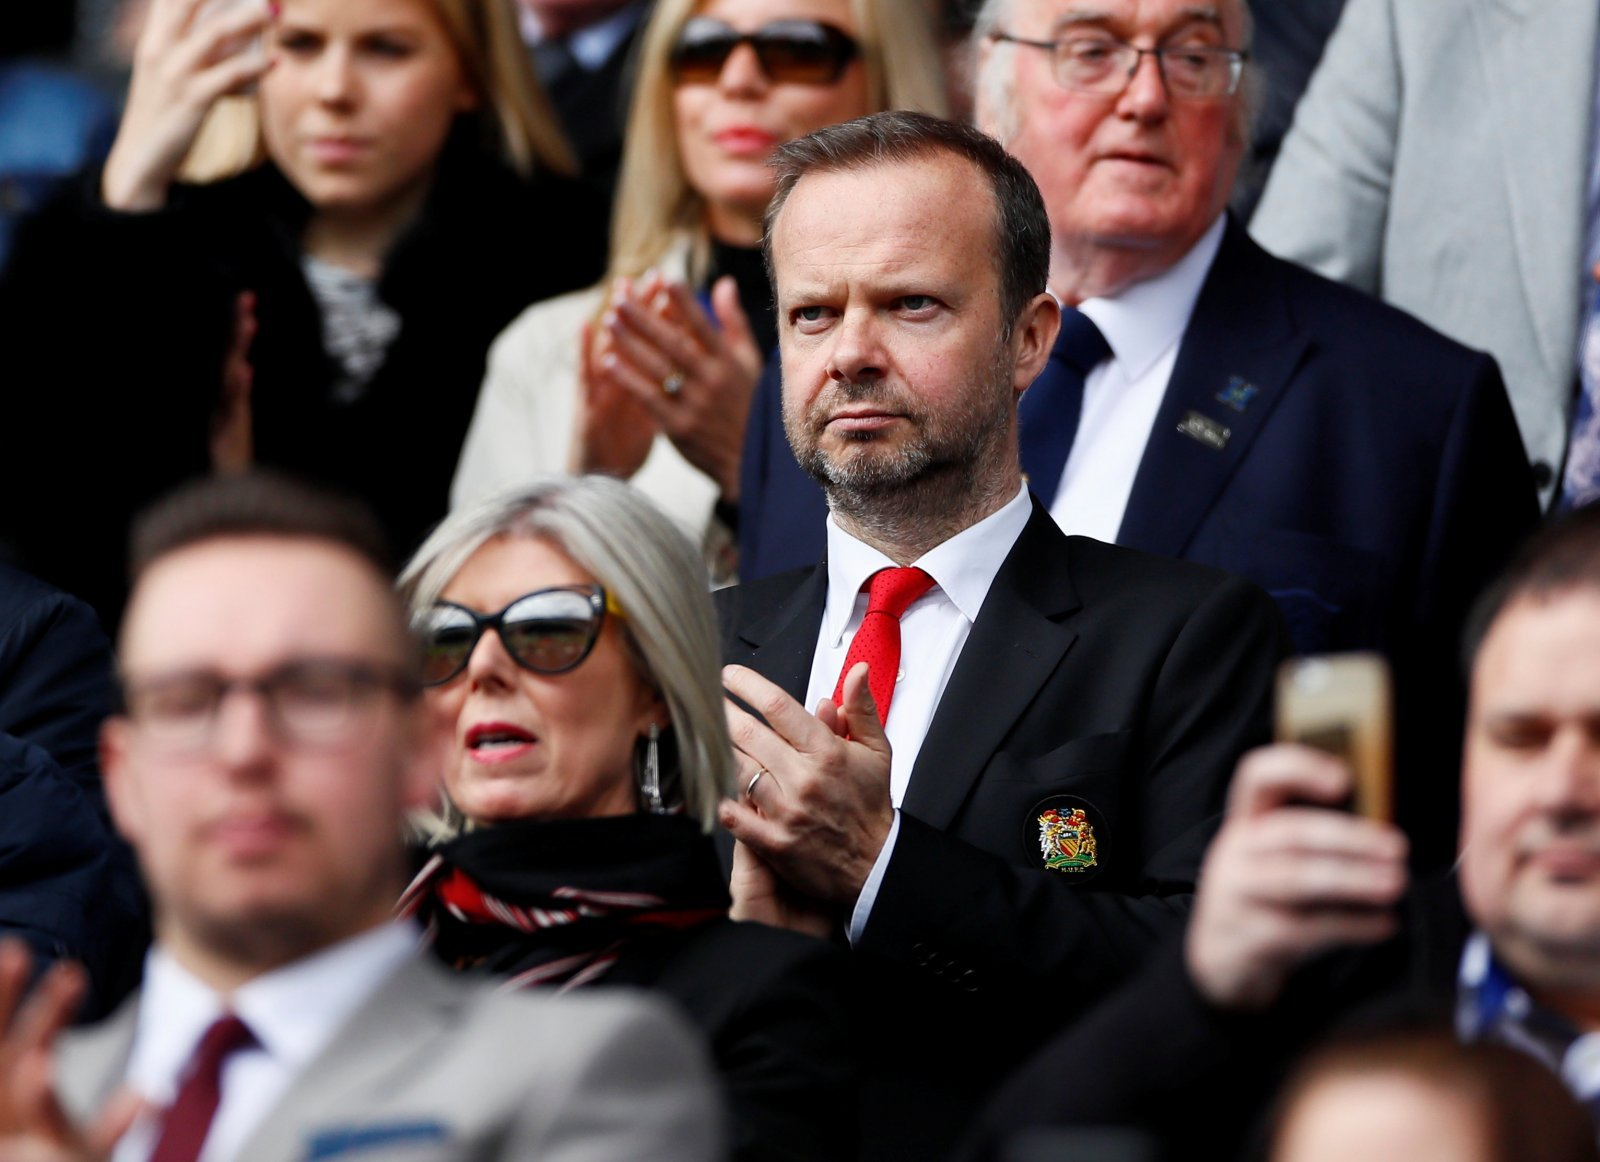 Manchester United: Woodward set to make worst decision yet in avoiding a new centre-back